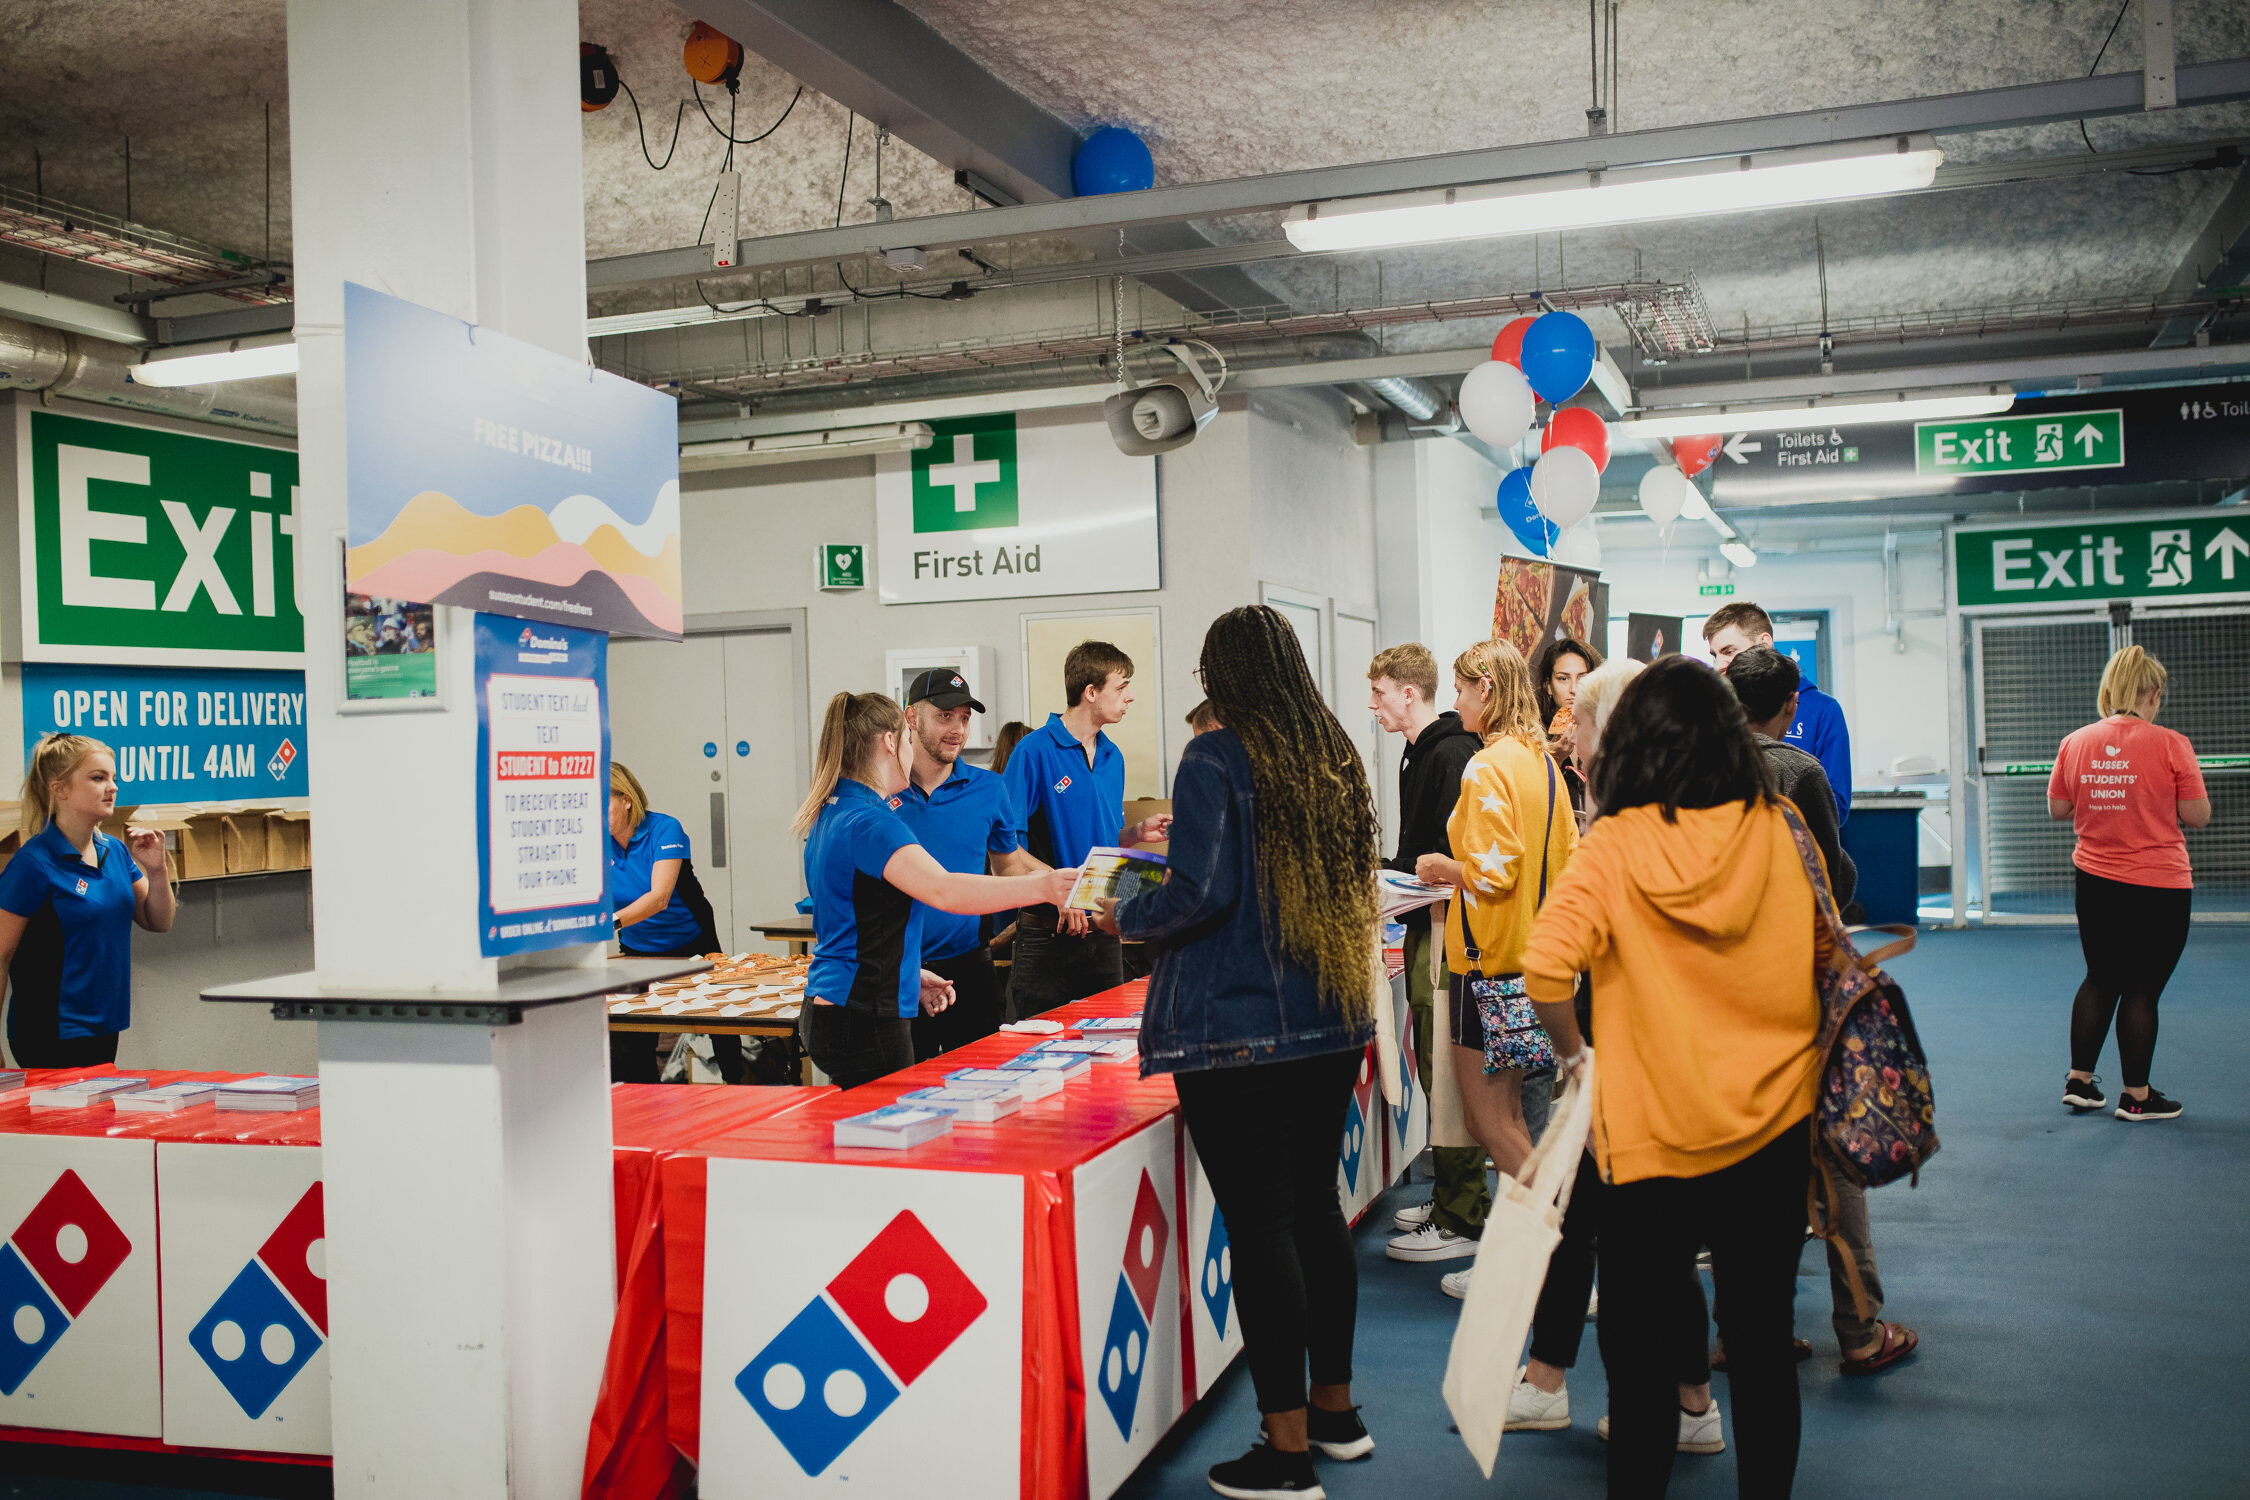 Free Domino Pizza University of Sussex